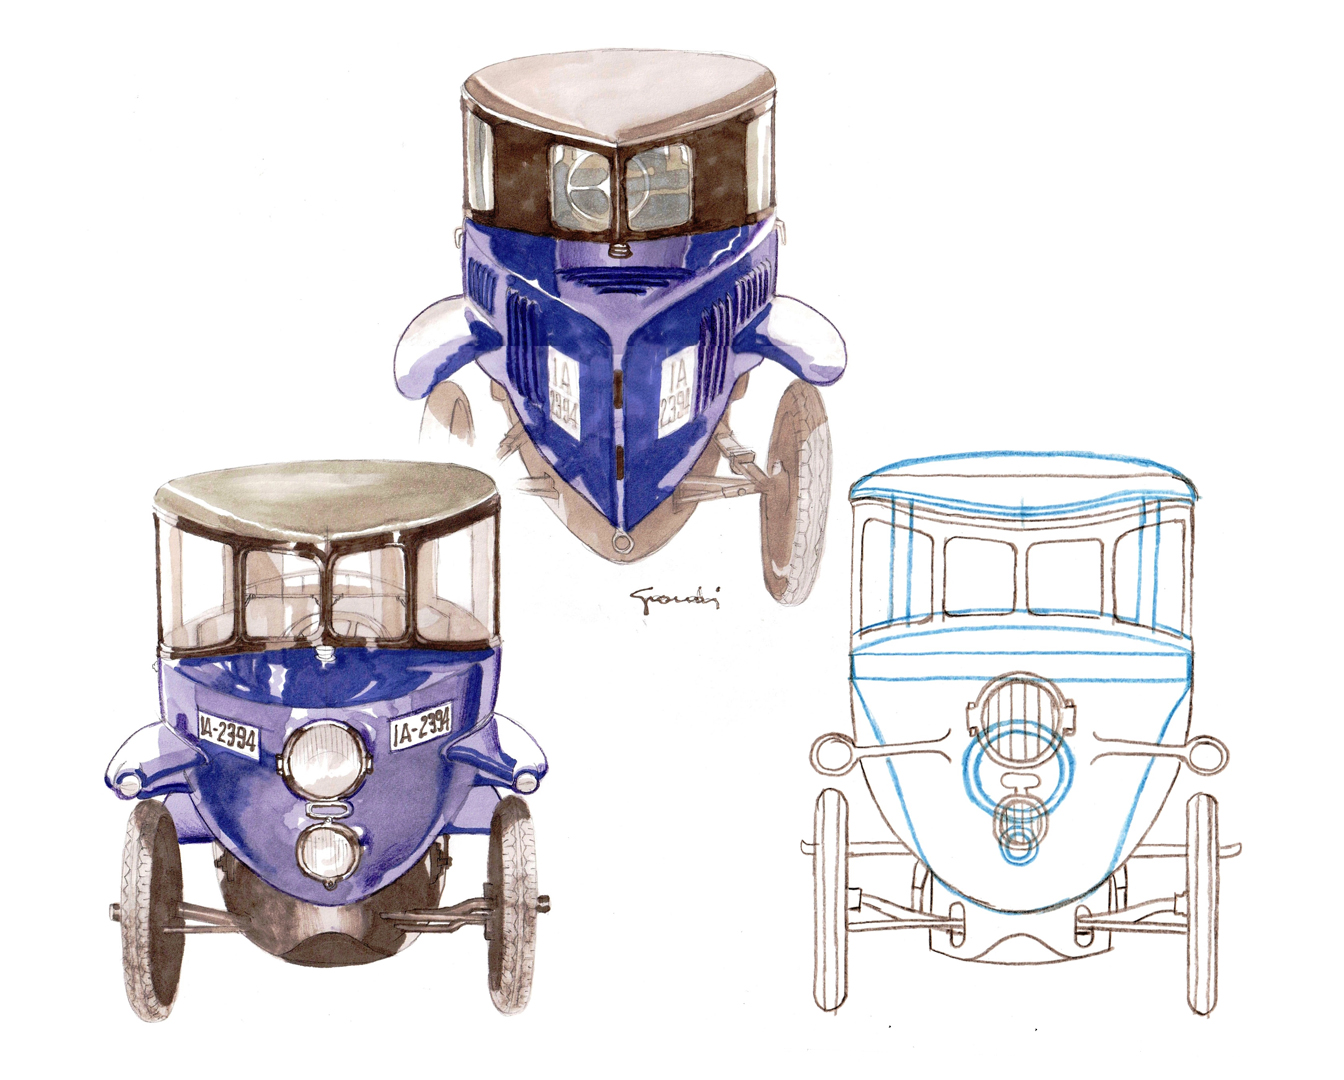 The differences between the configuration with spoked wheels (blue) and disc variants can be seen in the front and rear views and in the drawing of the closed version of the Tropfenwagen on the right